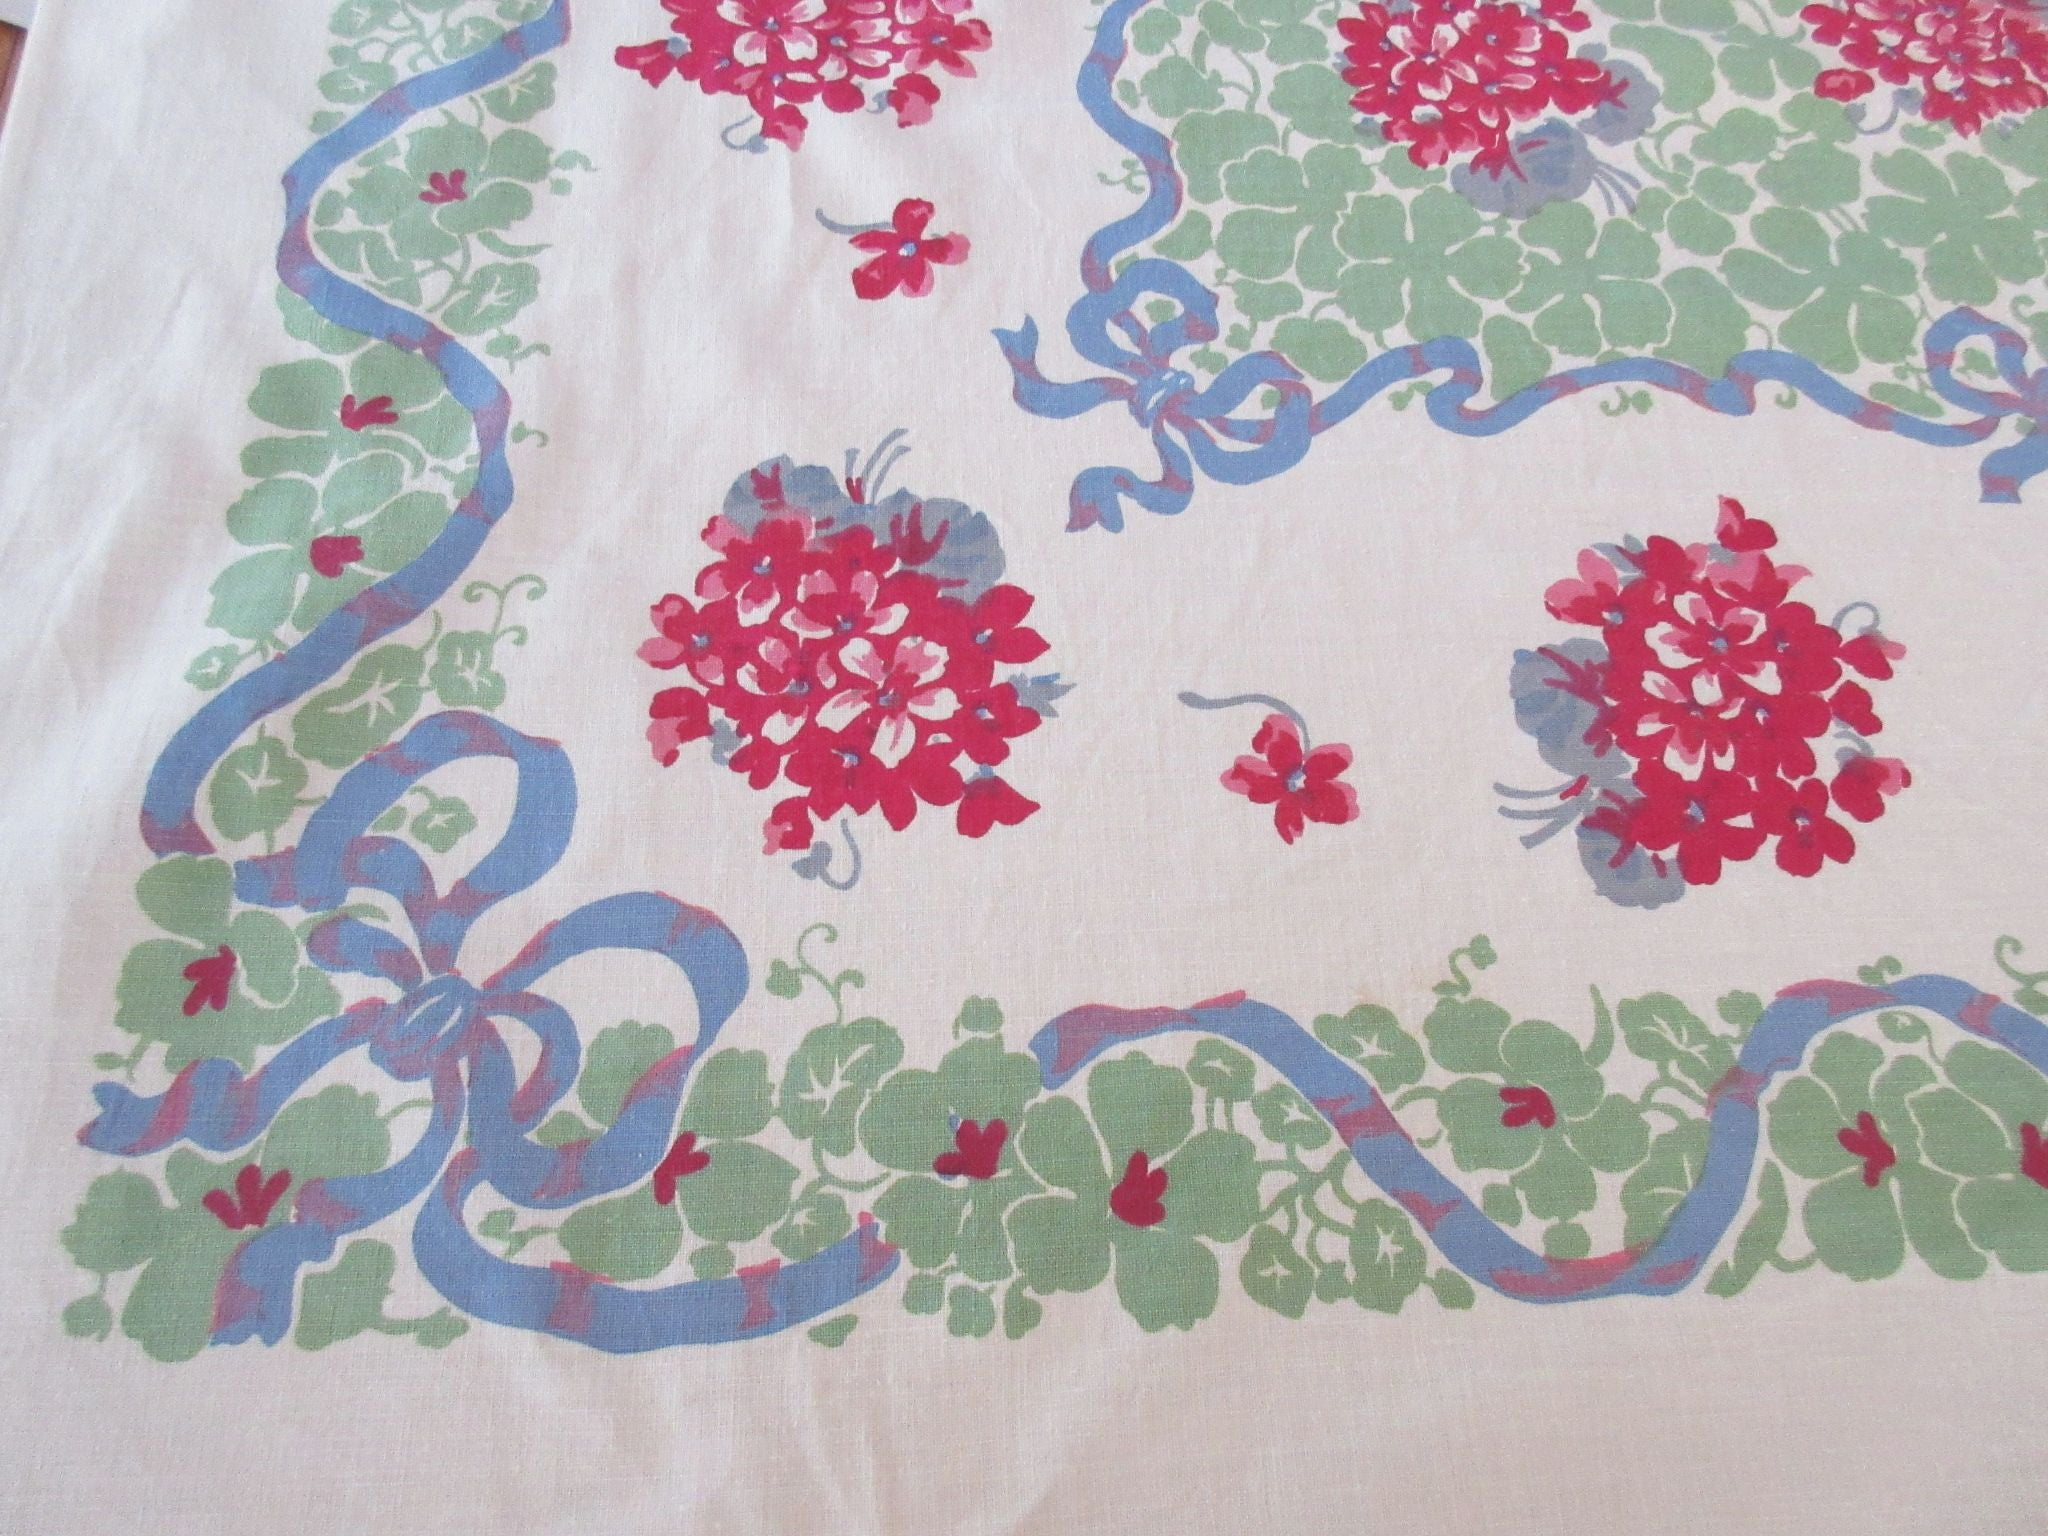 Bestest Ever Primary Violets on Green Floral Vintage Printed Tablecloth (66 X 50)